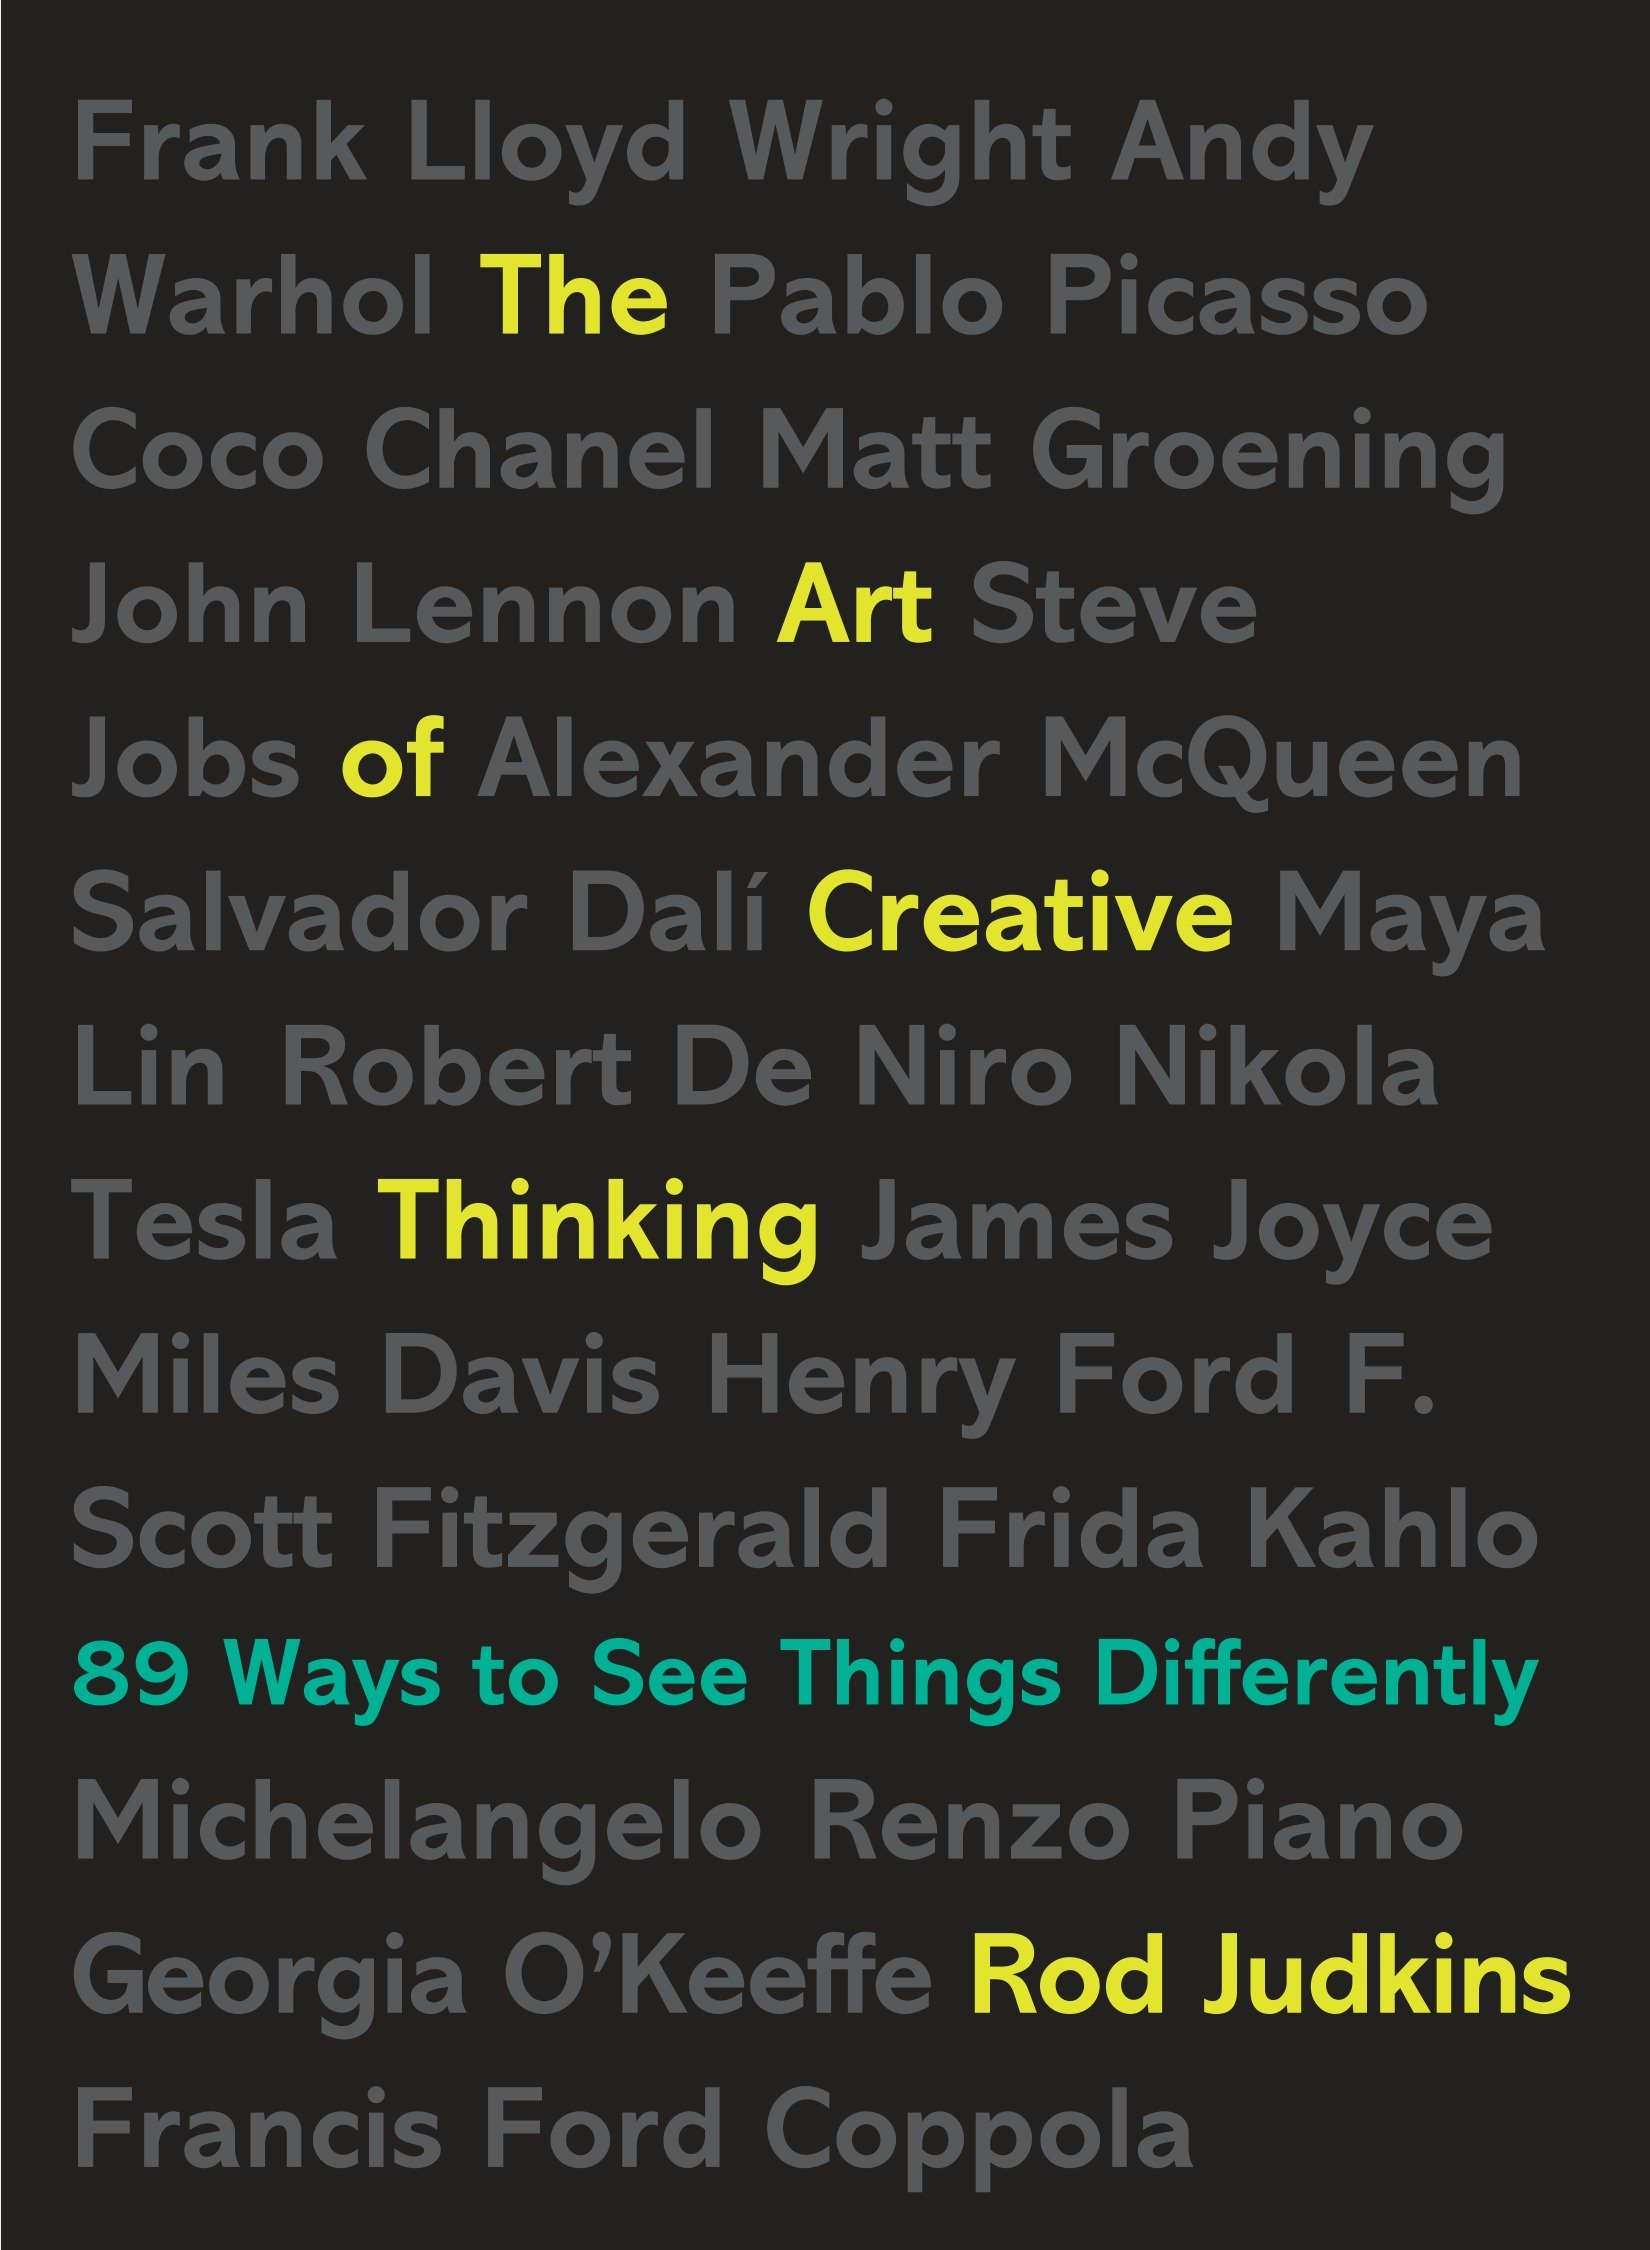 The Art of Creative Thinking 89 Ways to See Things Differently